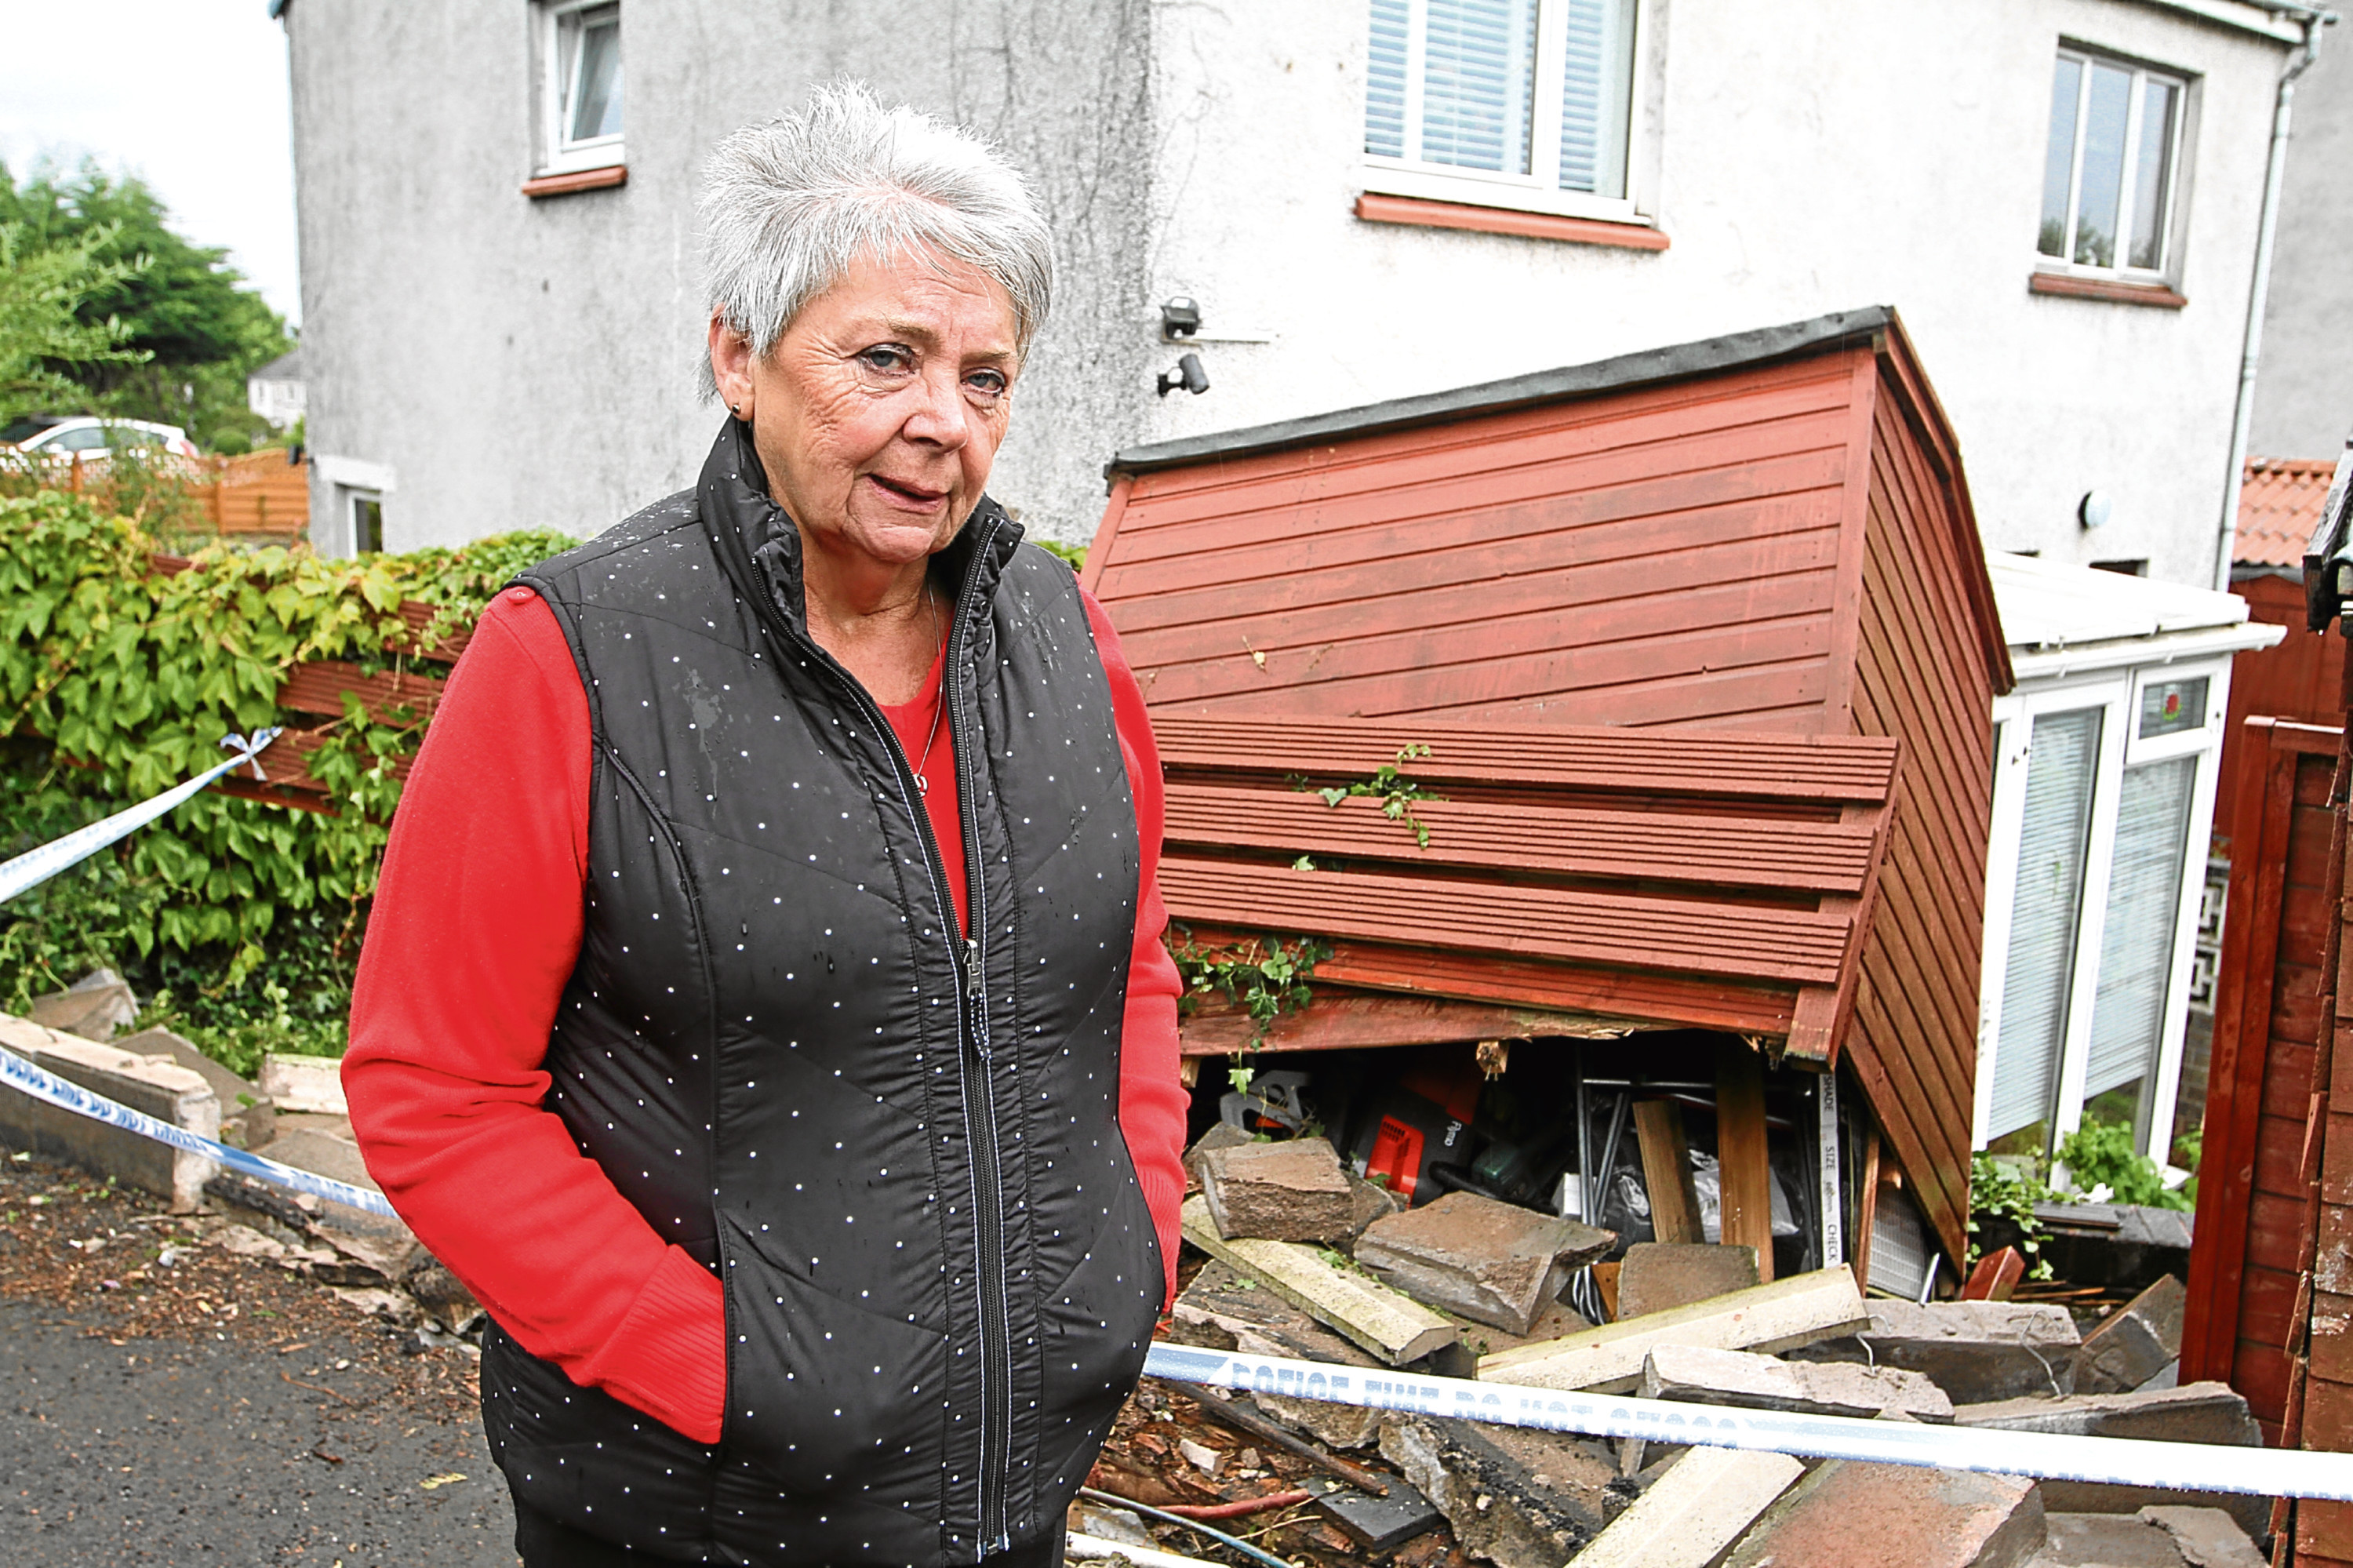 Patricia Smart shows the damage to her garden wall and shed following the crash.